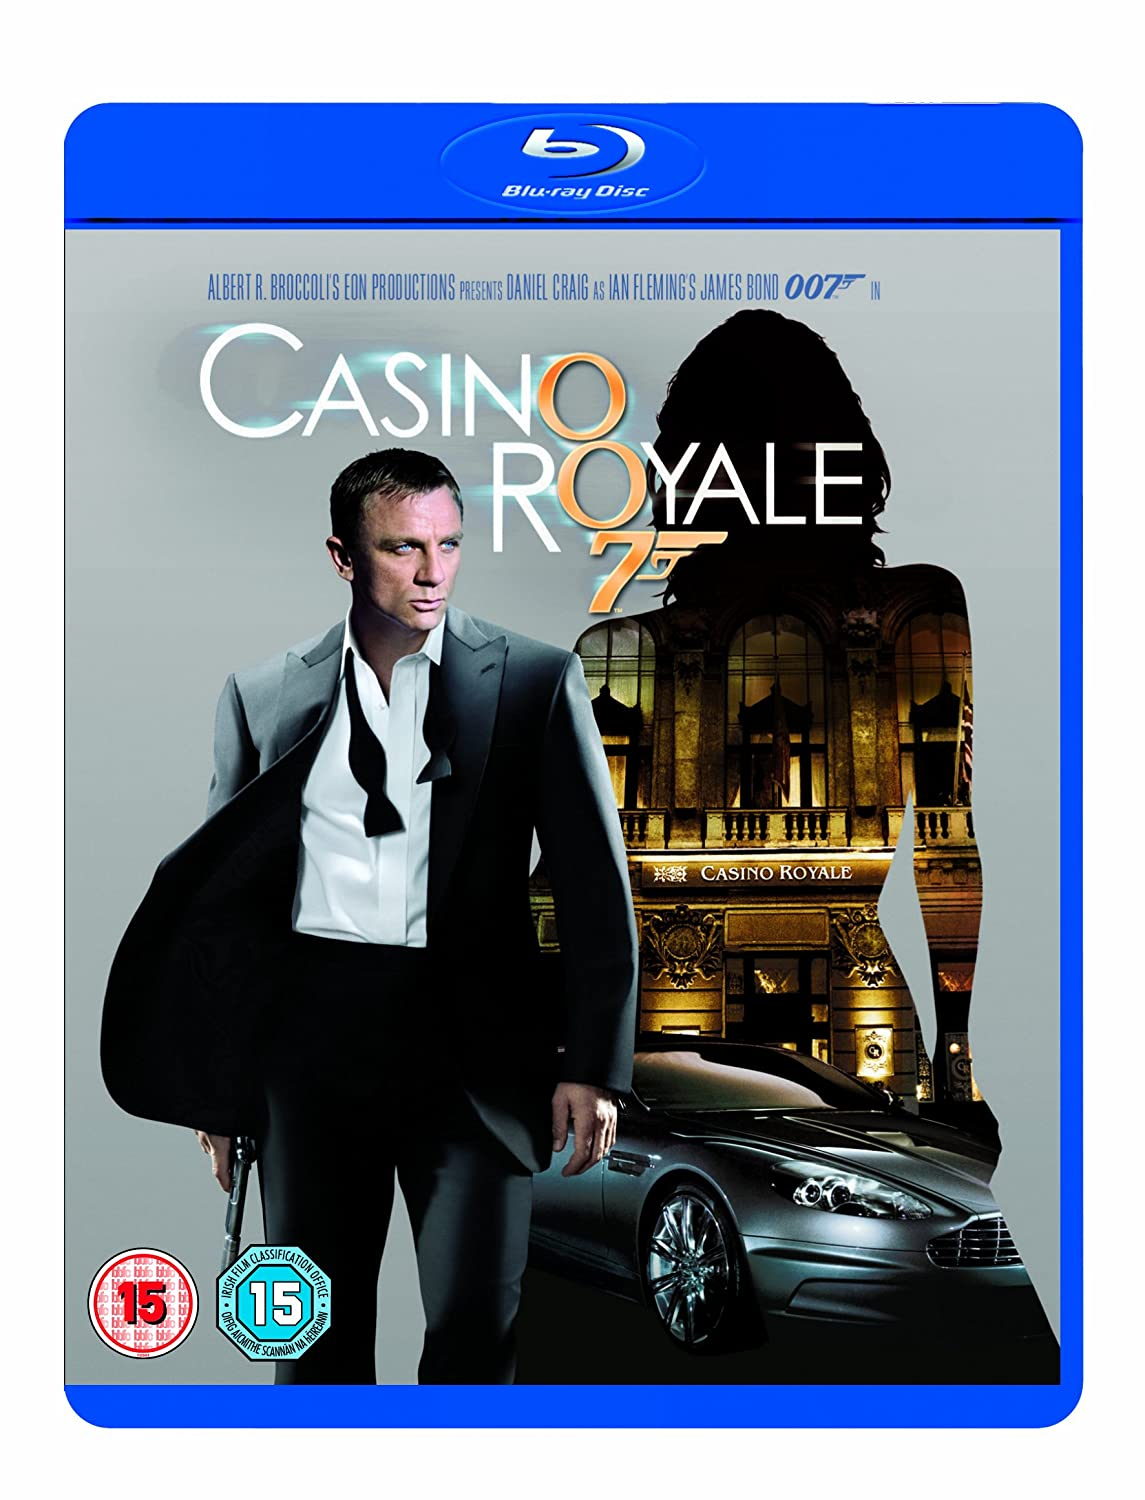 Casino royale rating plaza hotel and casino employment